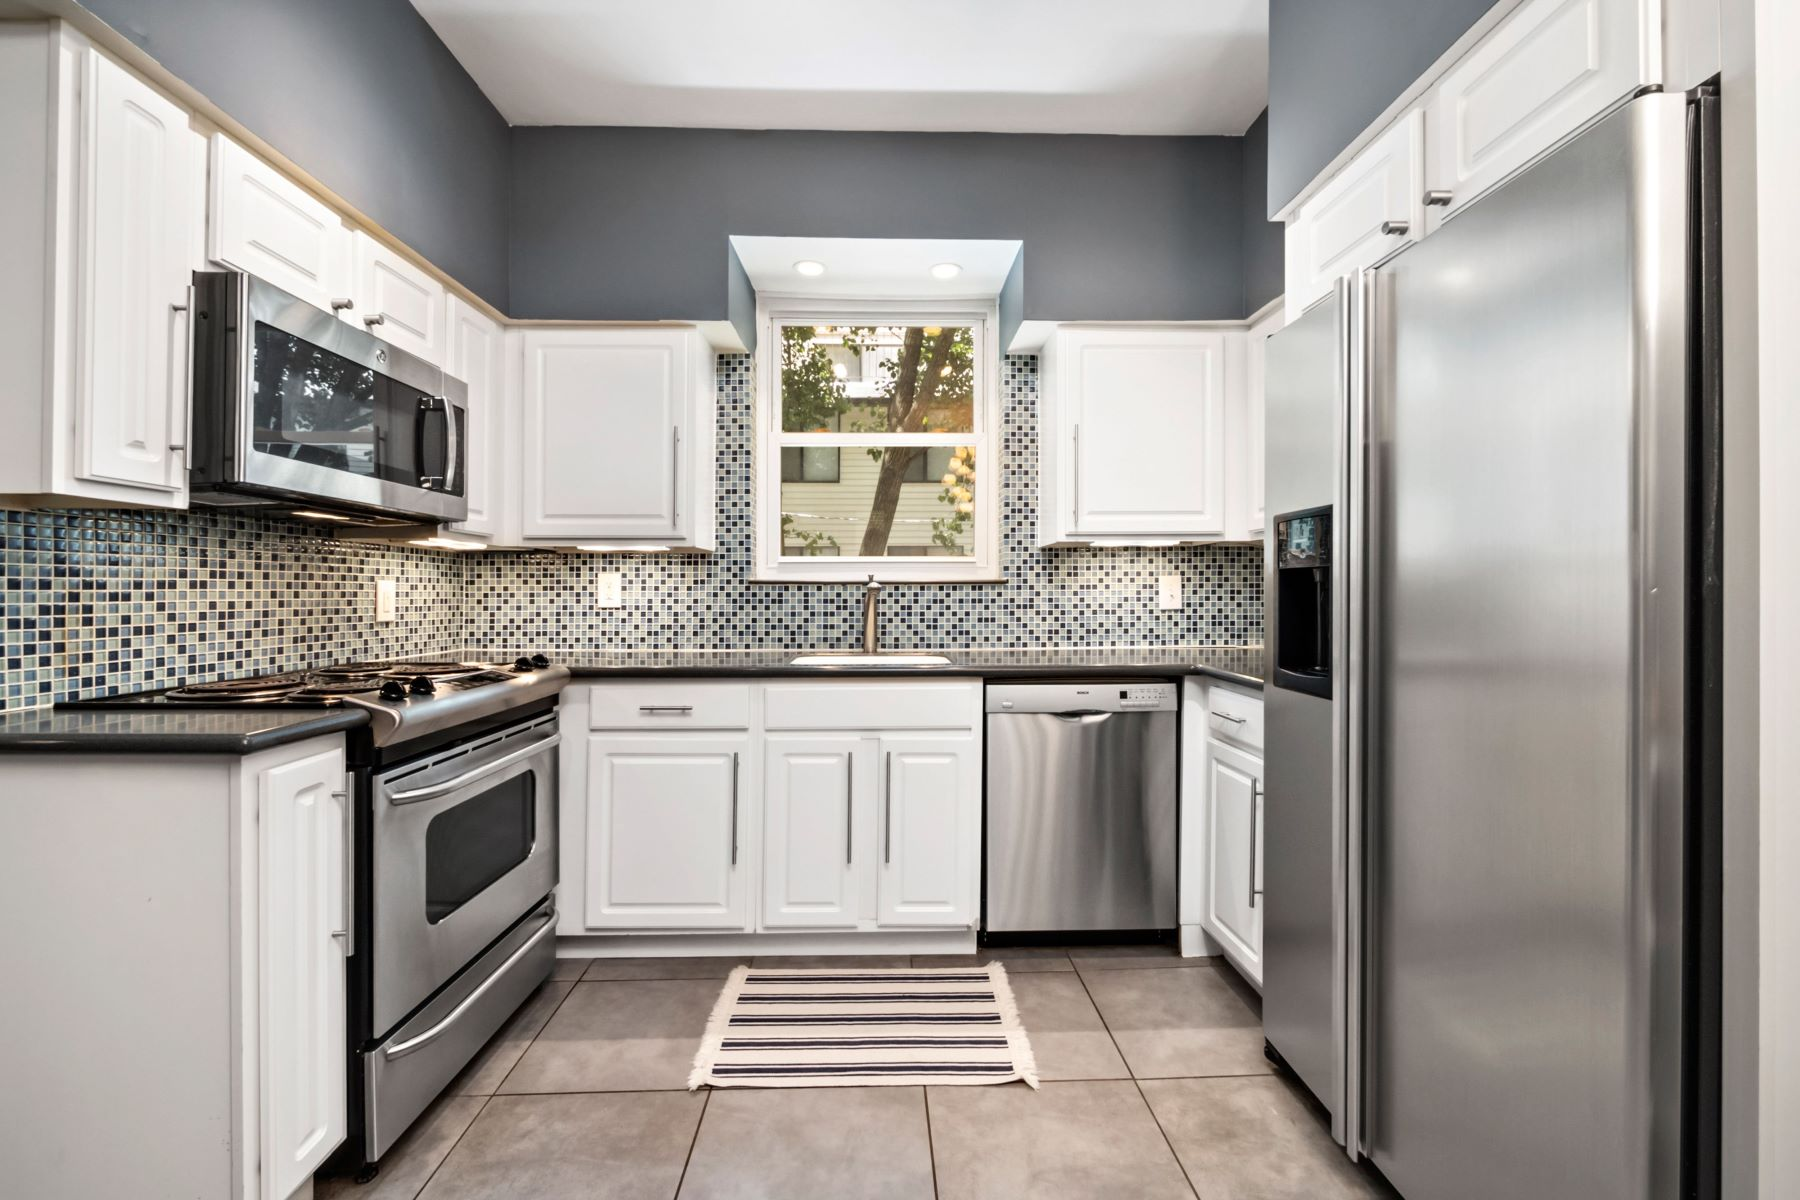 Additional photo for property listing at Spacious 2 bedroom Condo in the heart of it all! 5561 Waterman Boulevard #1W St. Louis, Missouri 63112 United States